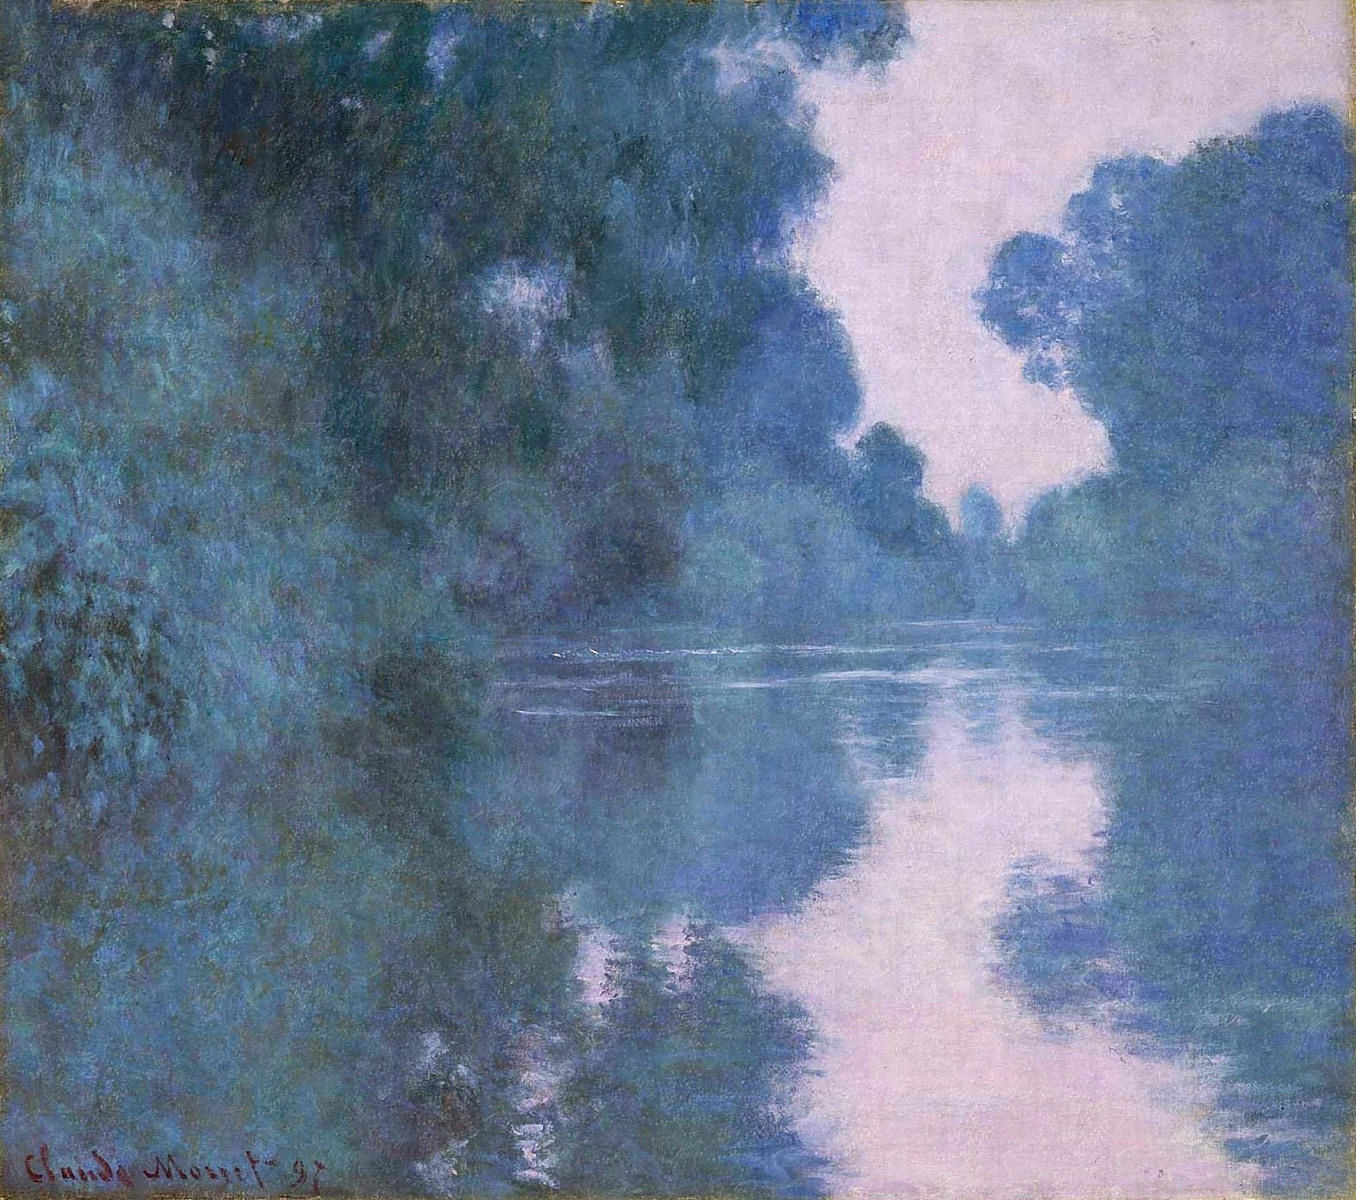 Morning on the Seine near Giverny 1897